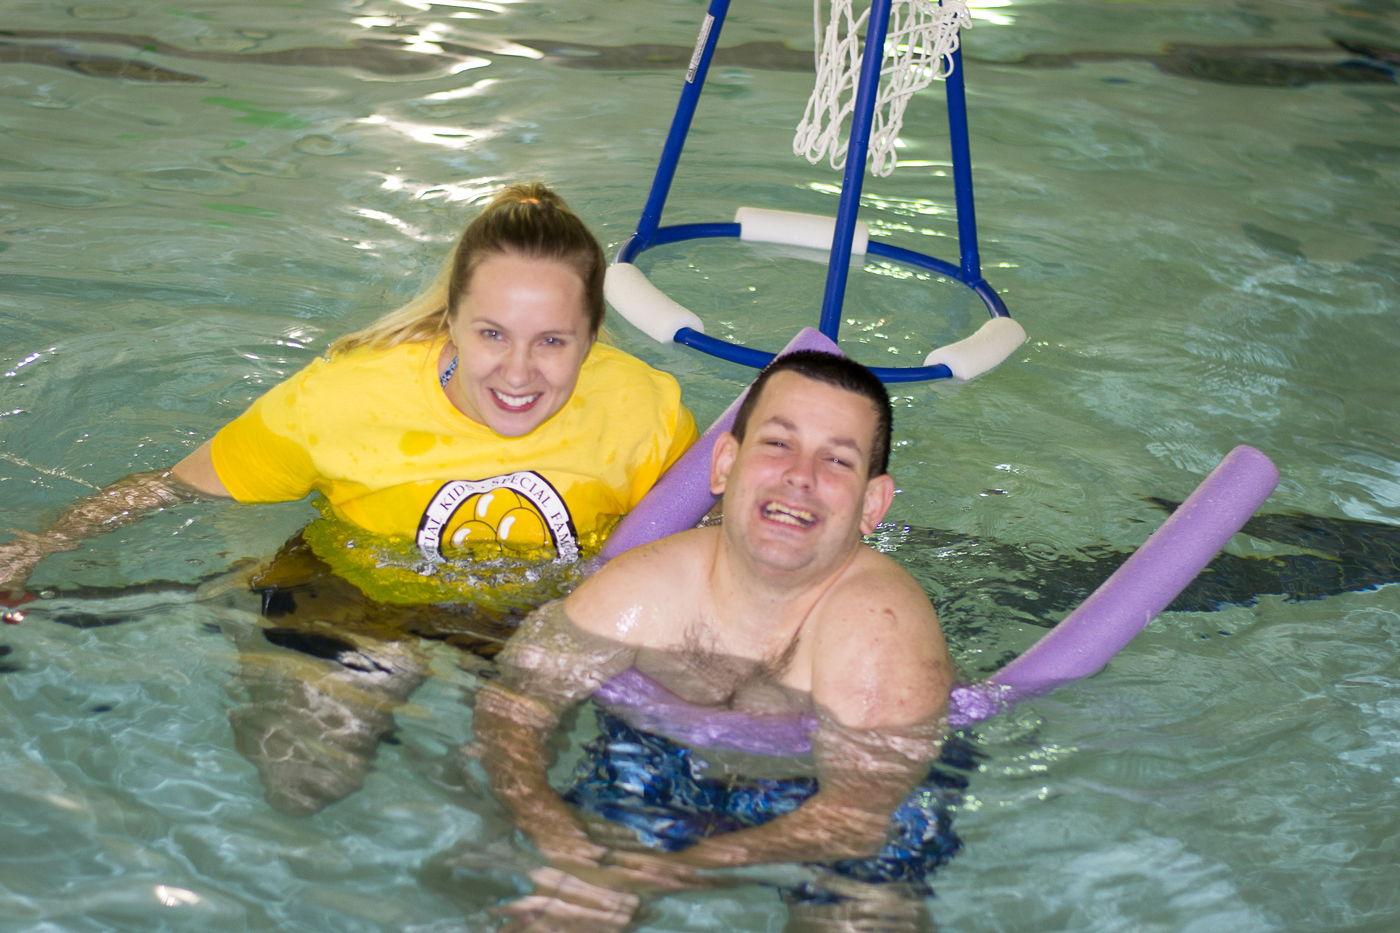 A JPMF volunteer swims with a child